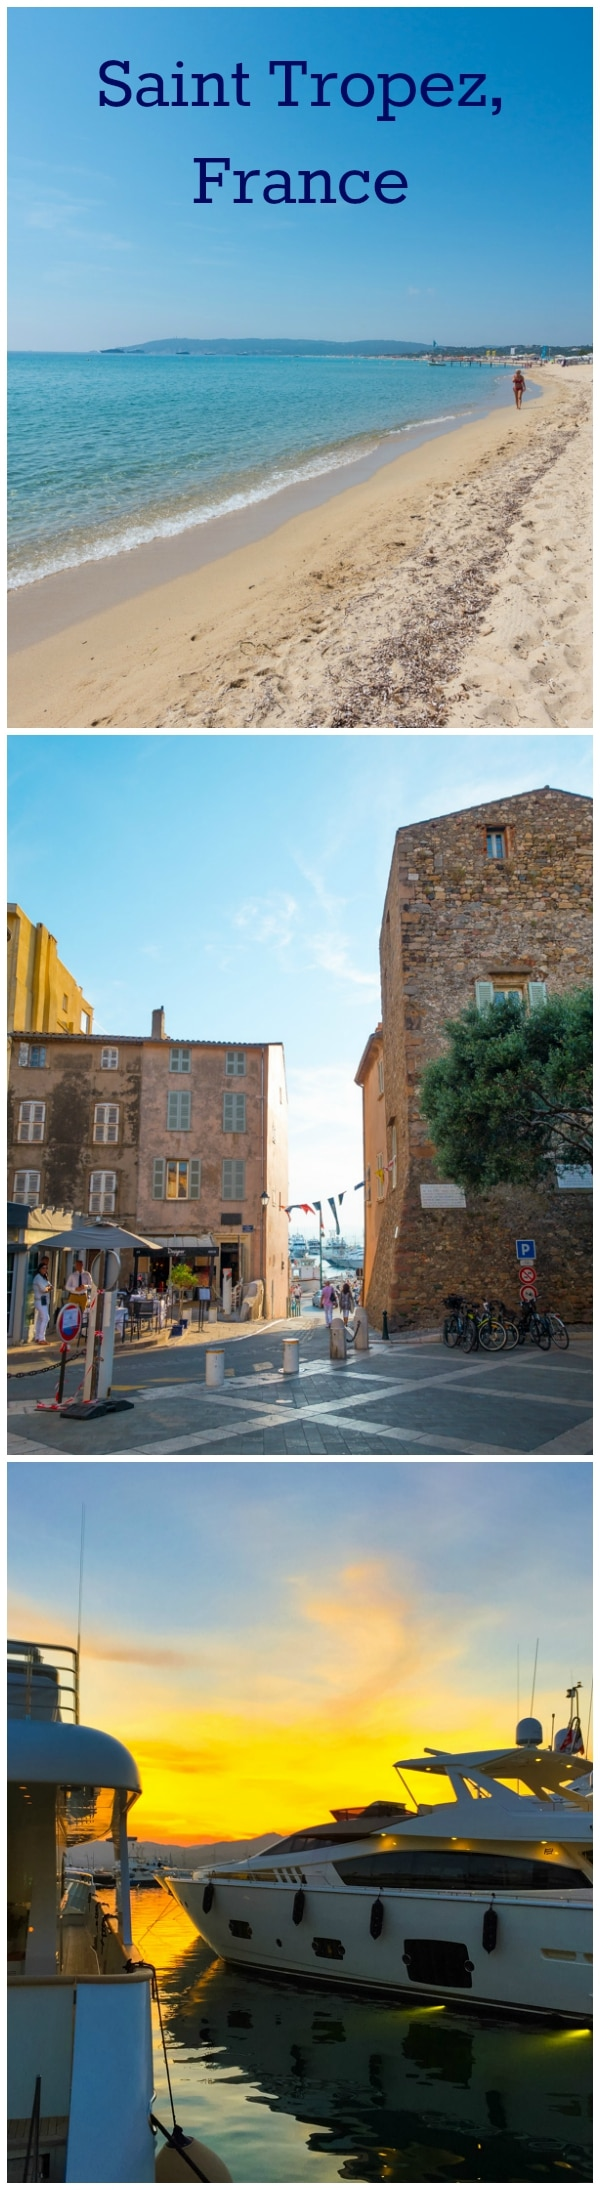 Exploring Saint Tropez, France on ASpicyPerspective.com - #Travel Tips and Photography in #France